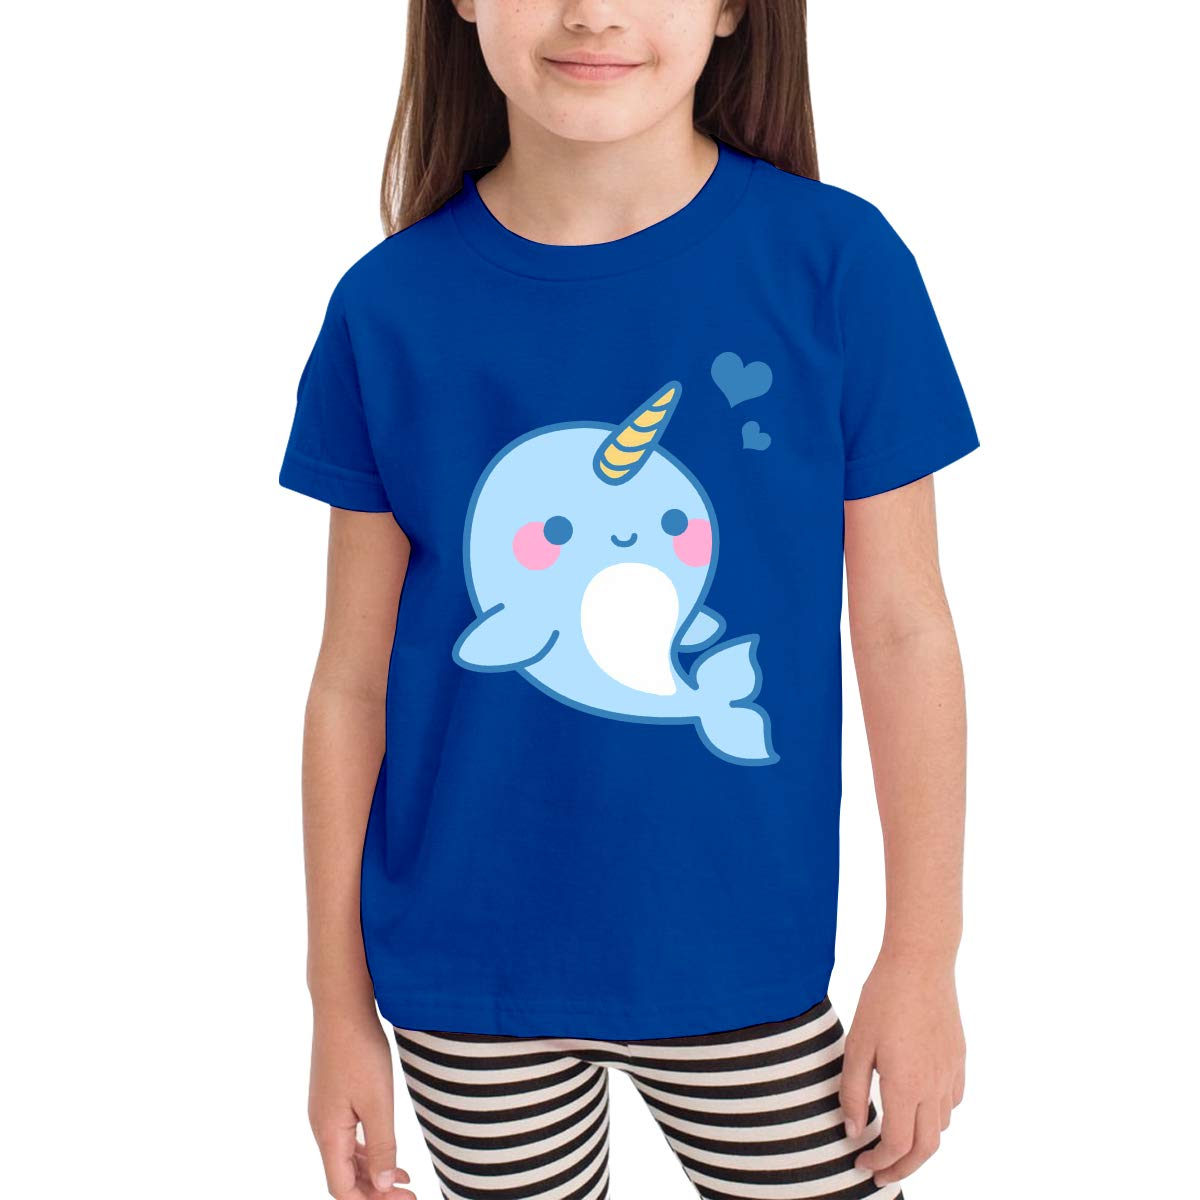 SKYAKLJA Narwhal Childrens Cotton Blue Short Sleeve T-Shirt for Girl